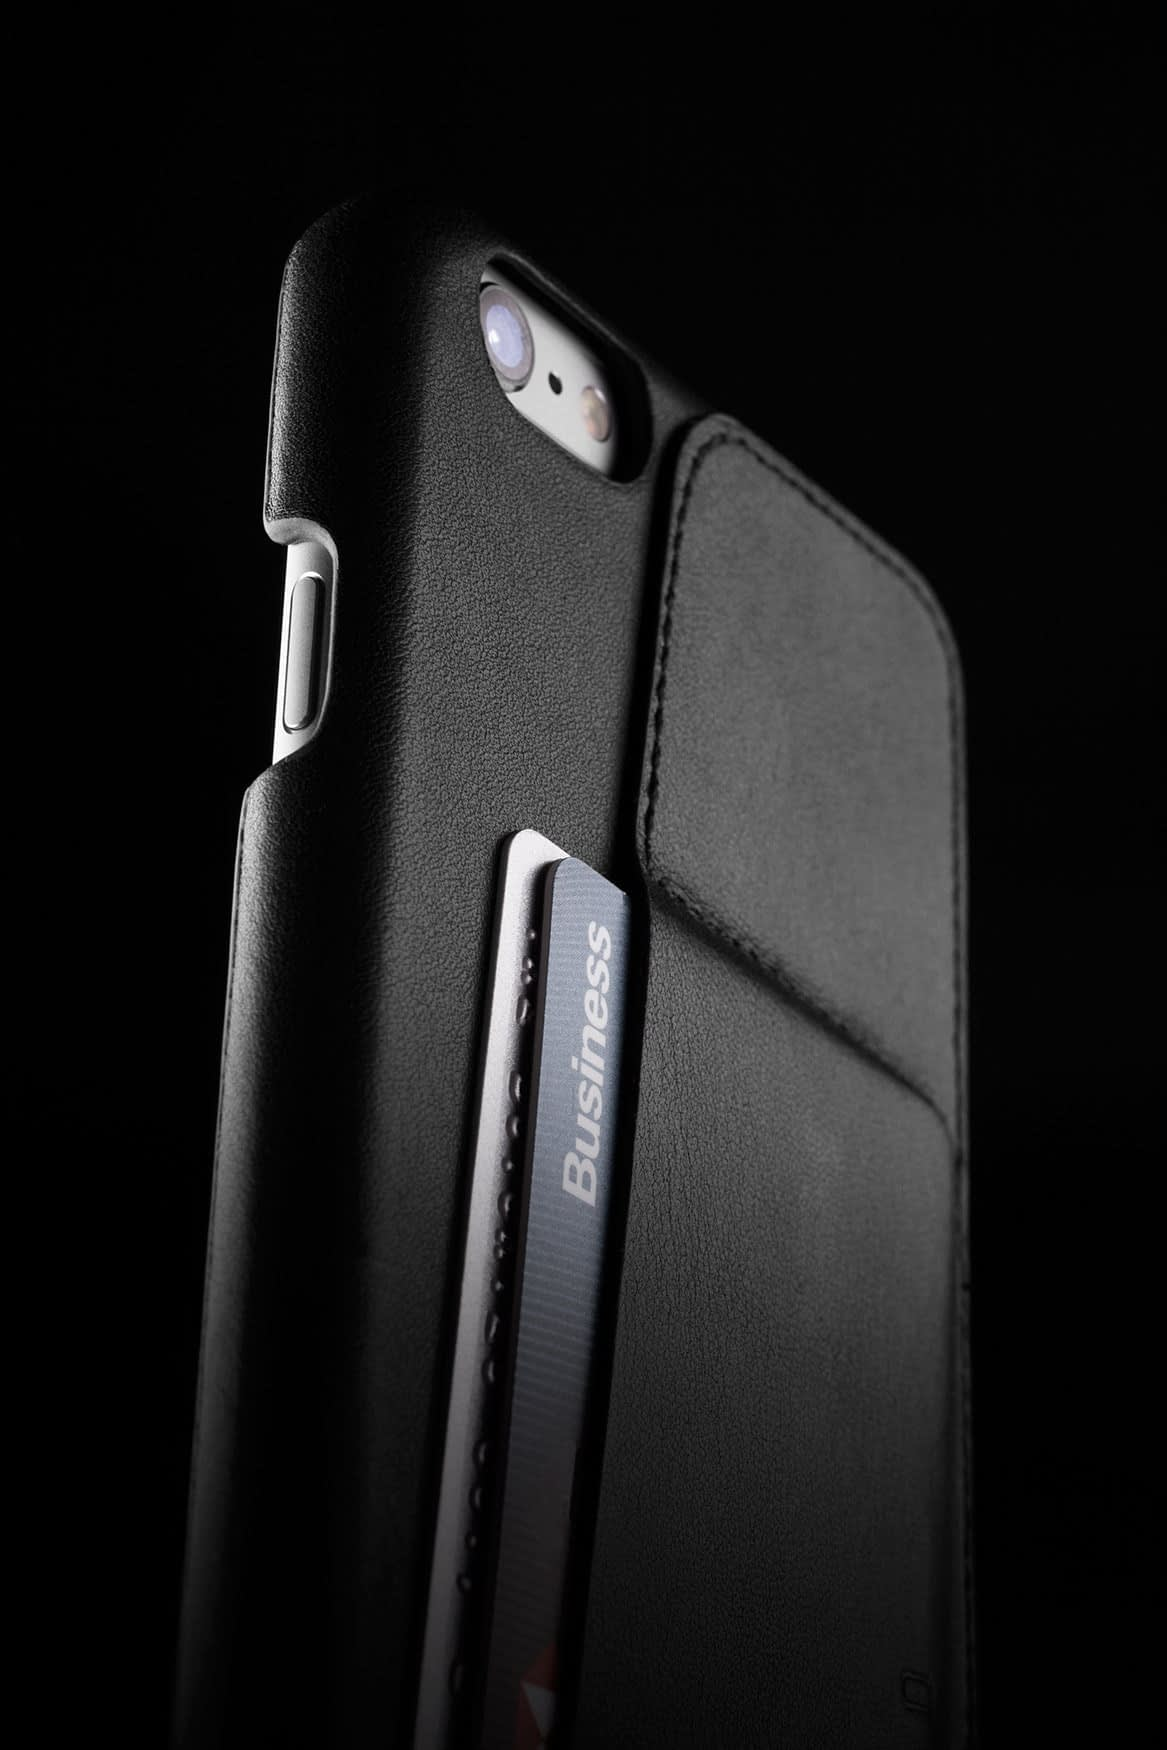 Leather Wallet Case 80° for iPhone 6 Plus Black Lifestyle 0012